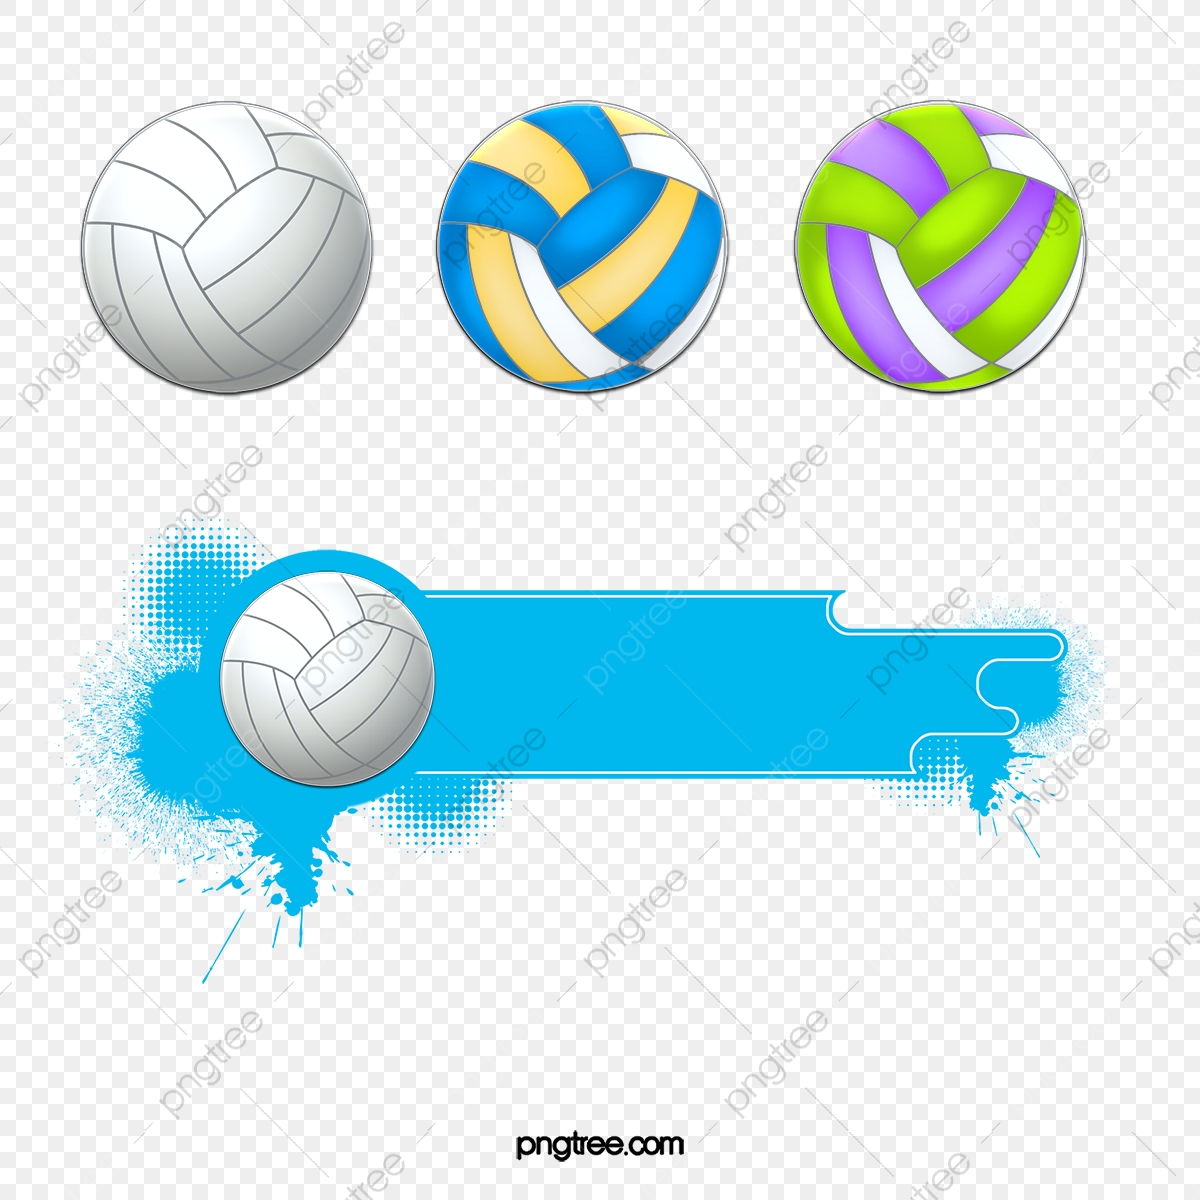 Vector Beautiful Volleyball Volleyball Clipart Beach Volleyball Paint Png Transparent Clipart Image And Psd File For Free Download